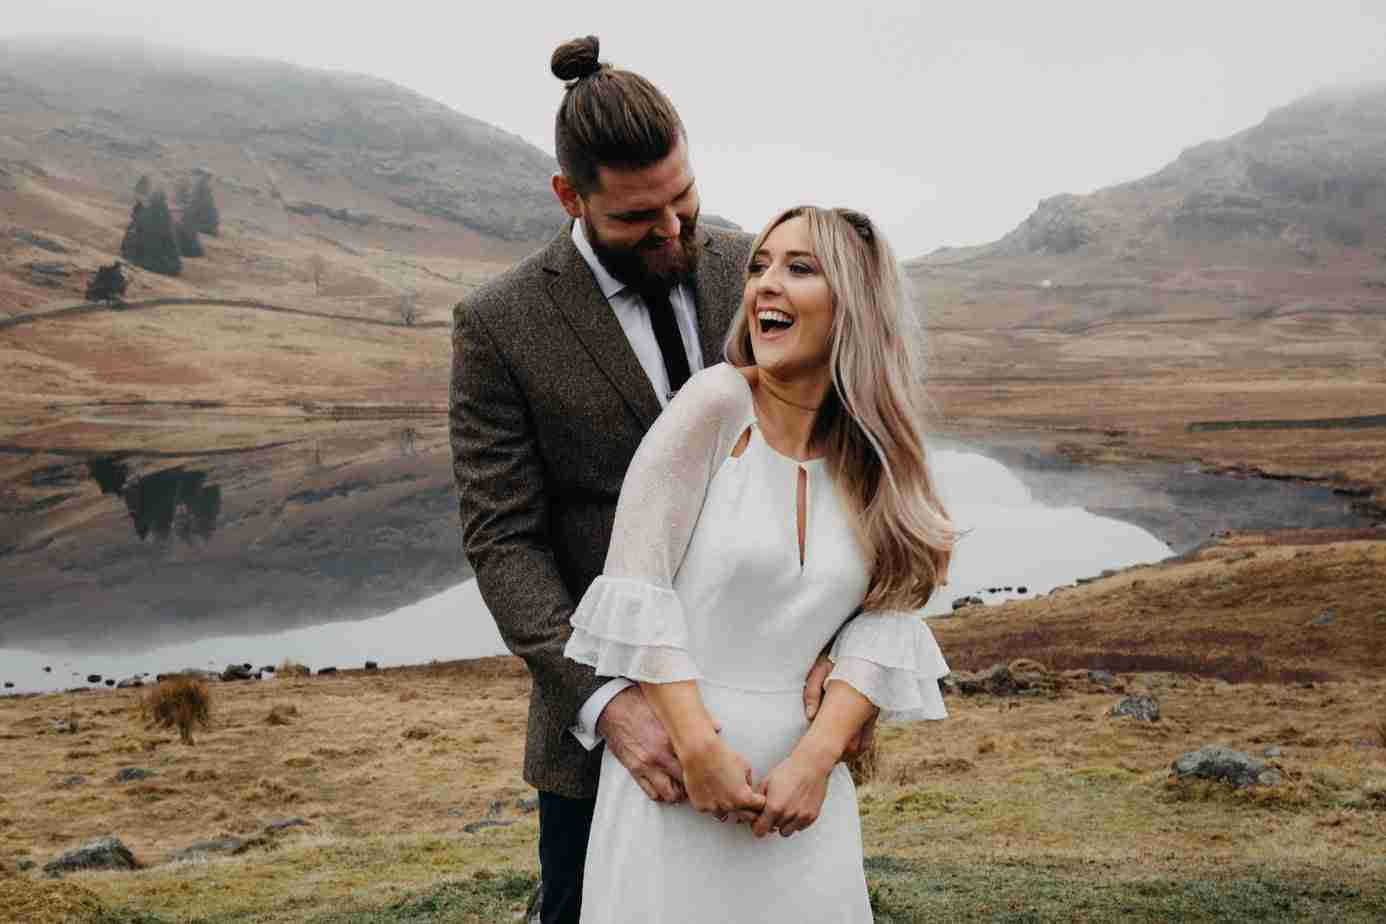 Elopement wedding. Wild, bohemian bride with long, blonde hair style and bearded groom pose in front of Blea Tarn, Lake District.